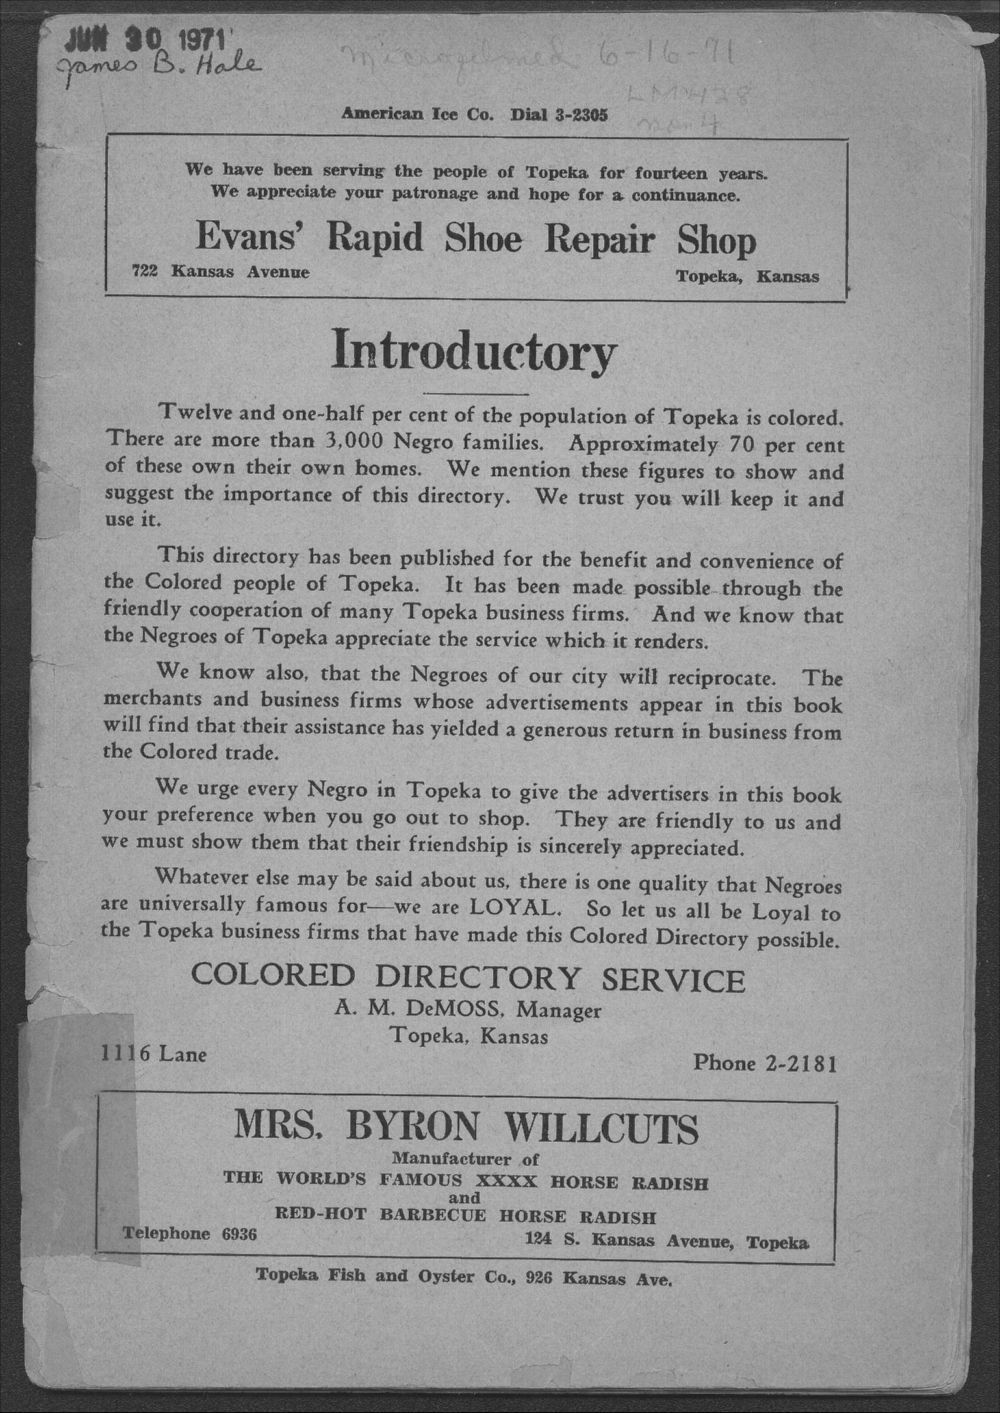 Colored Directory, Topeka, Kansas - Introductory